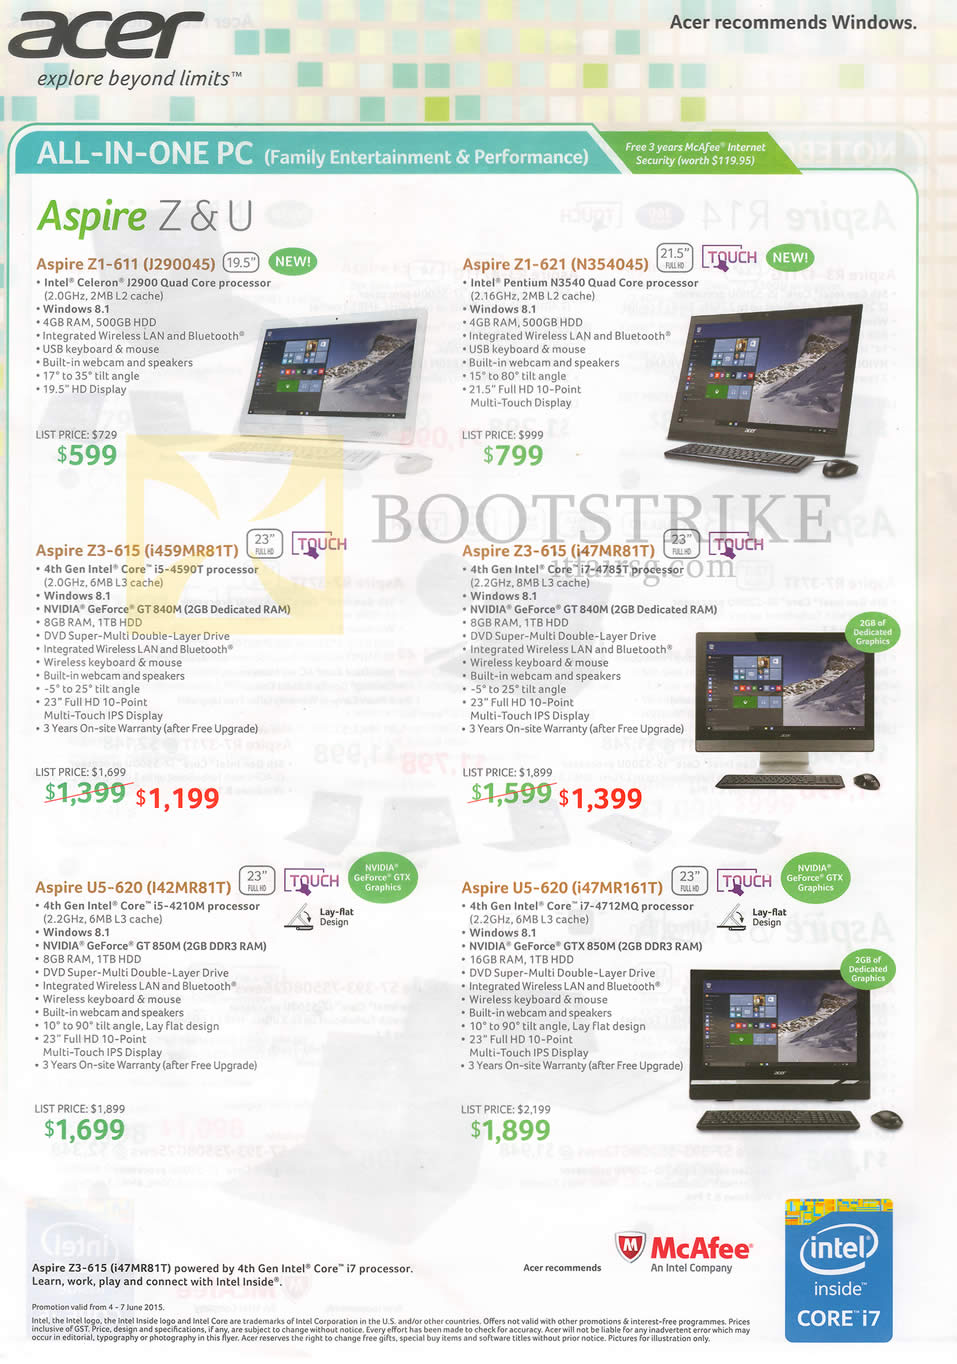 PC SHOW 2015 price list image brochure of Acer AIO Desktop PCs Aspire Z1-611, 621, Z3-615, U5-620